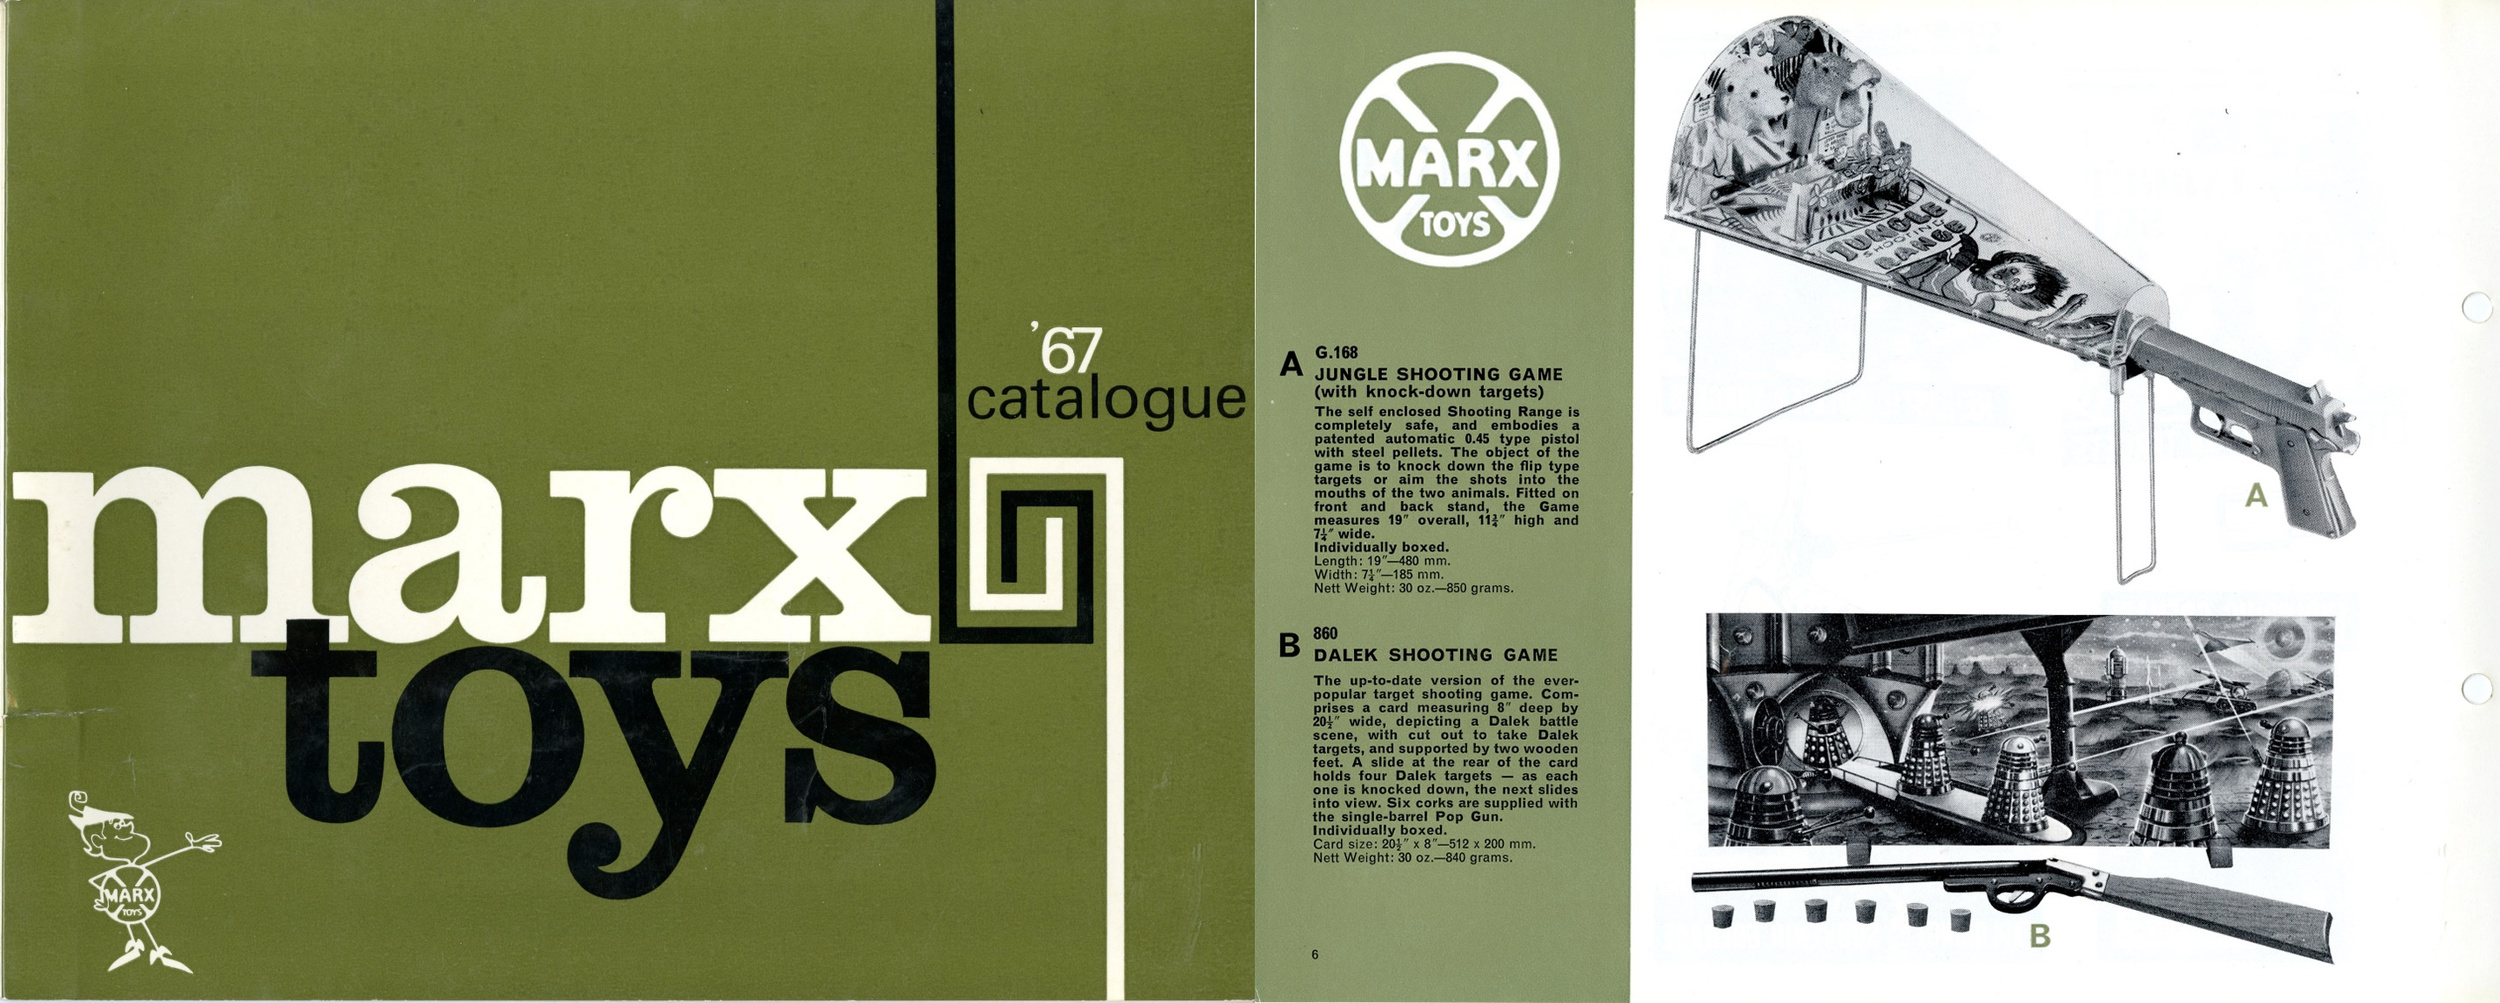 Louis Marx and Company Ltd. 1967 catalogue including the Dalek Shooting Game